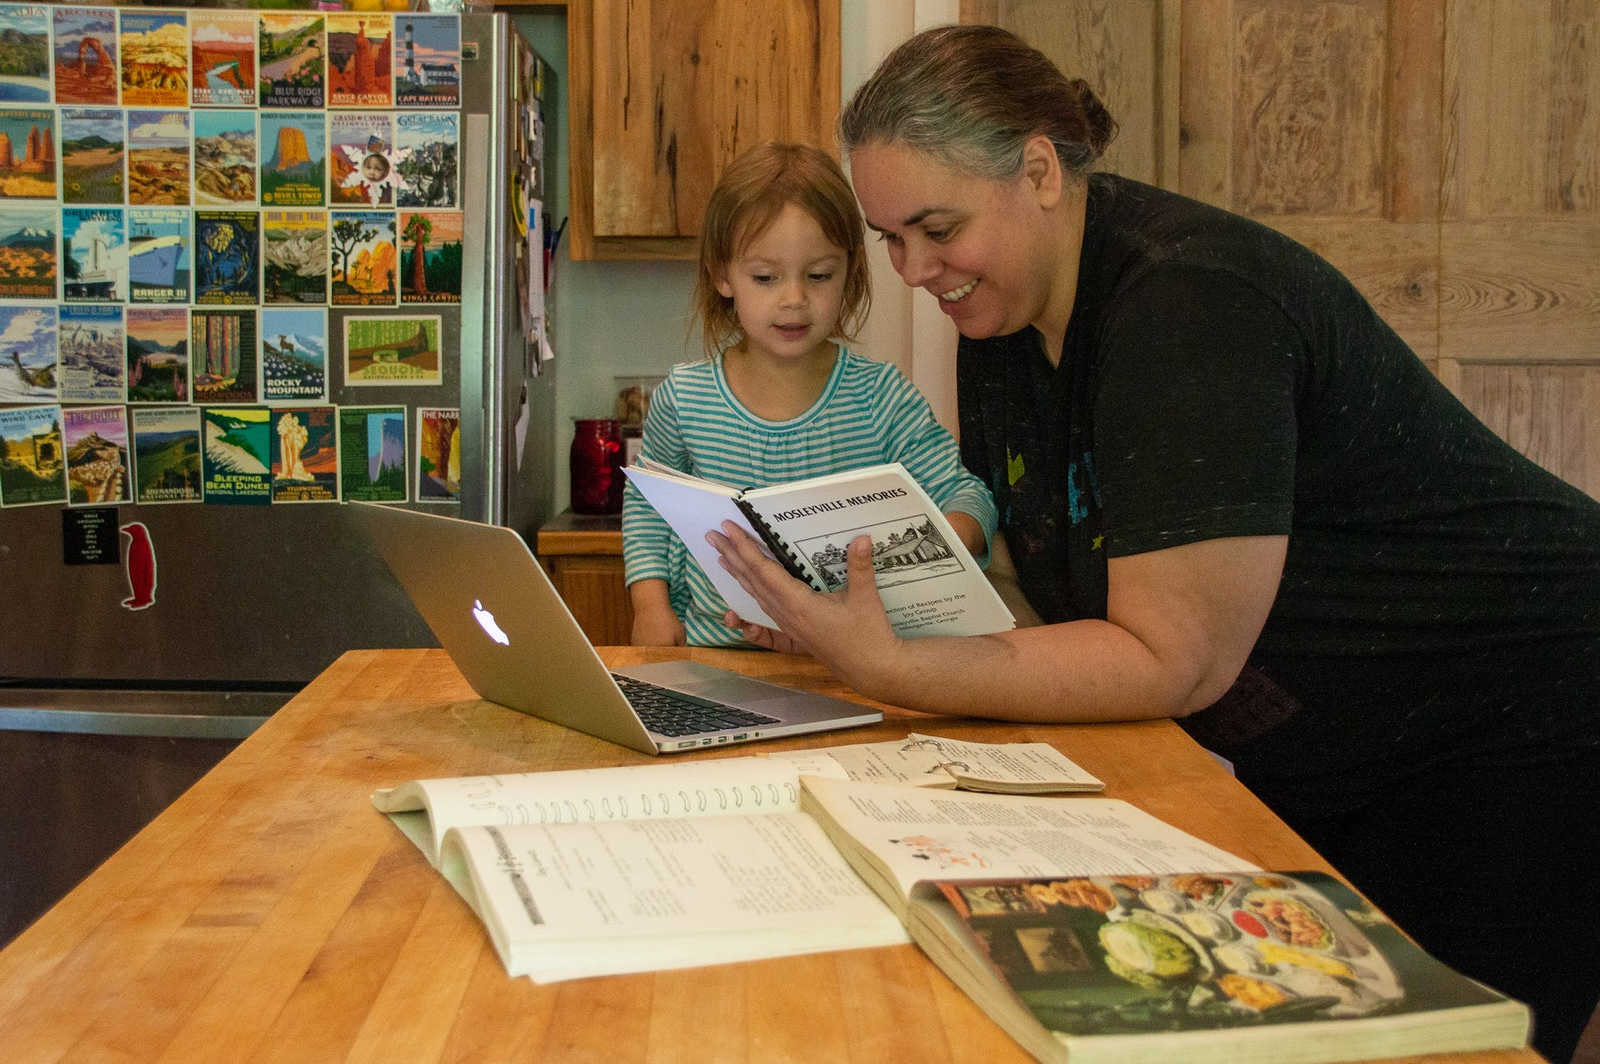 Opperman works on the cookbook at home with her daughter, Isabel.